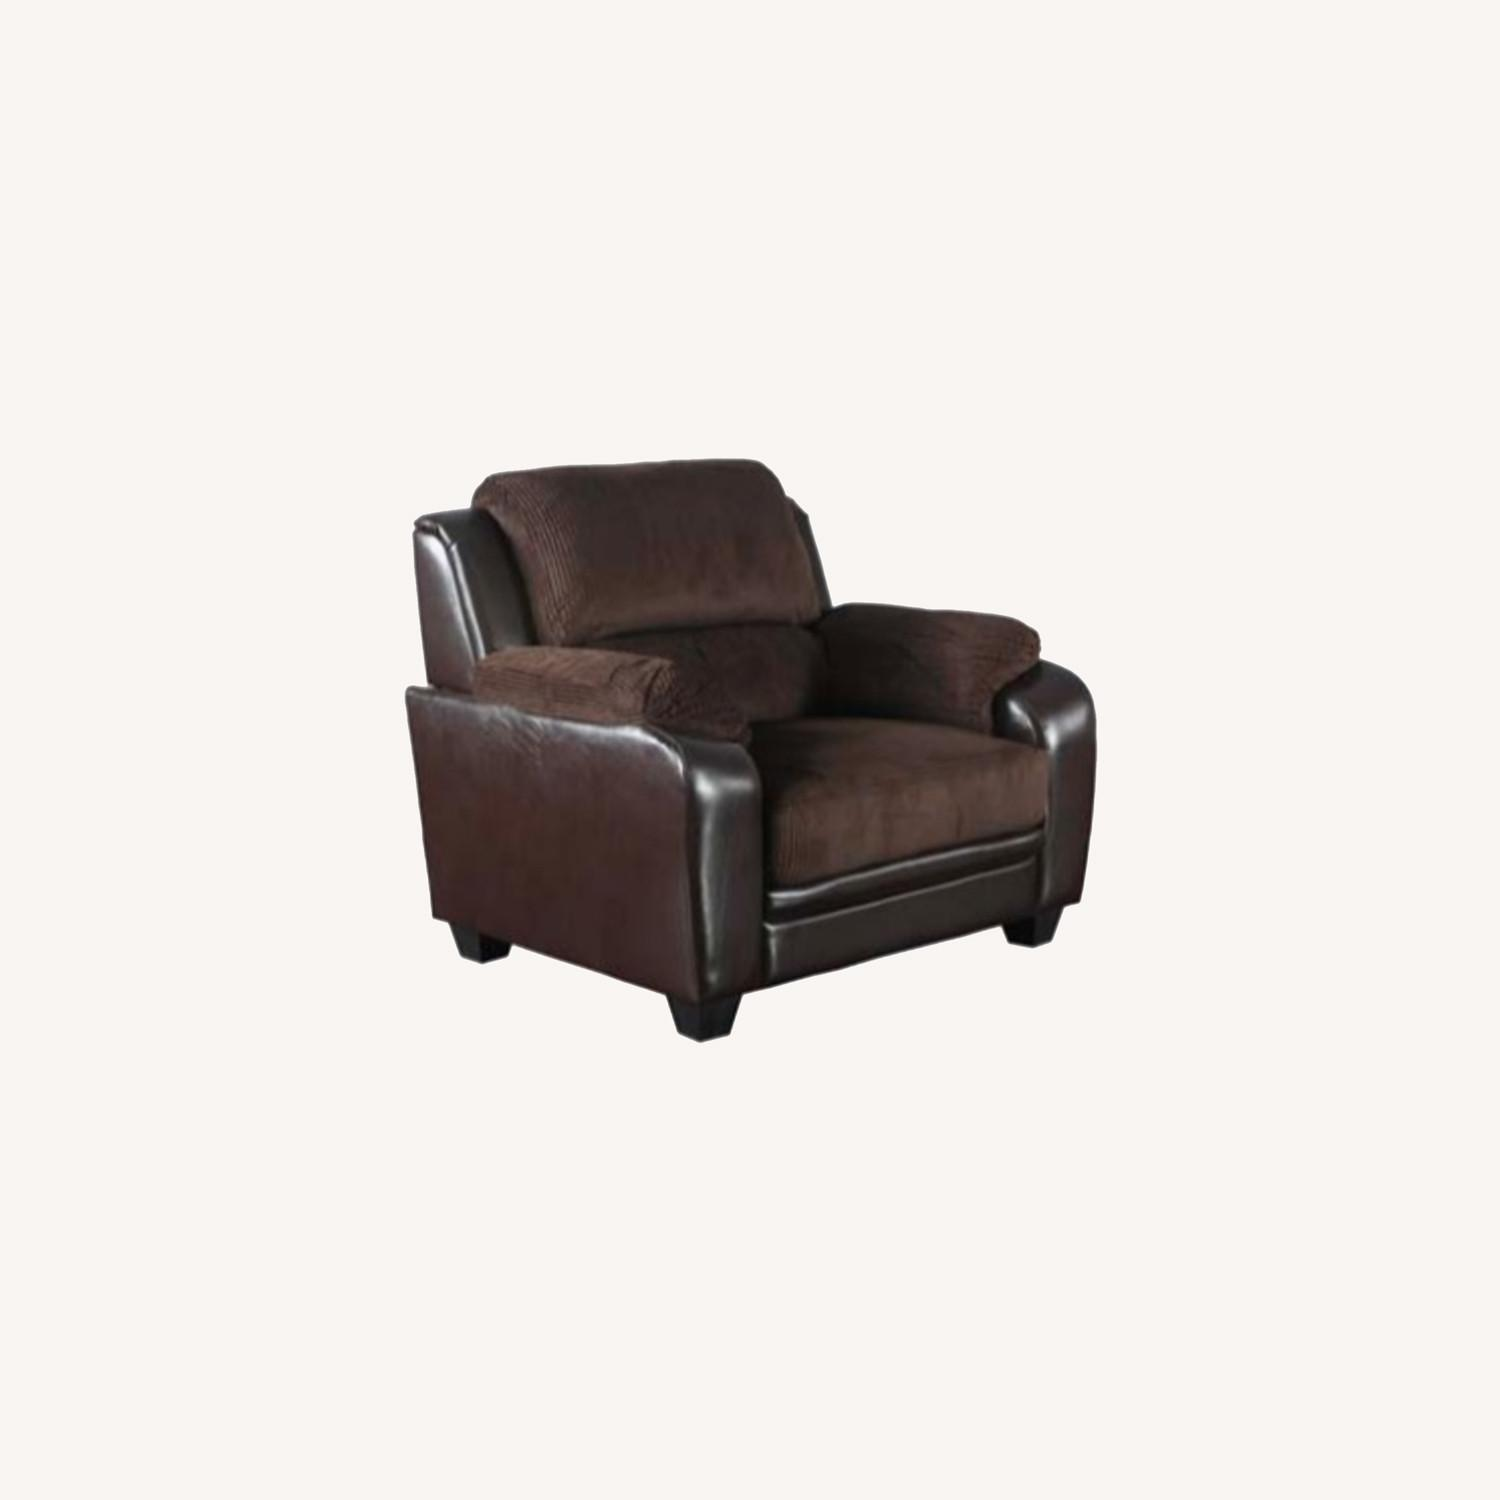 Chair In Rich Chocolate Leatherette - image-6